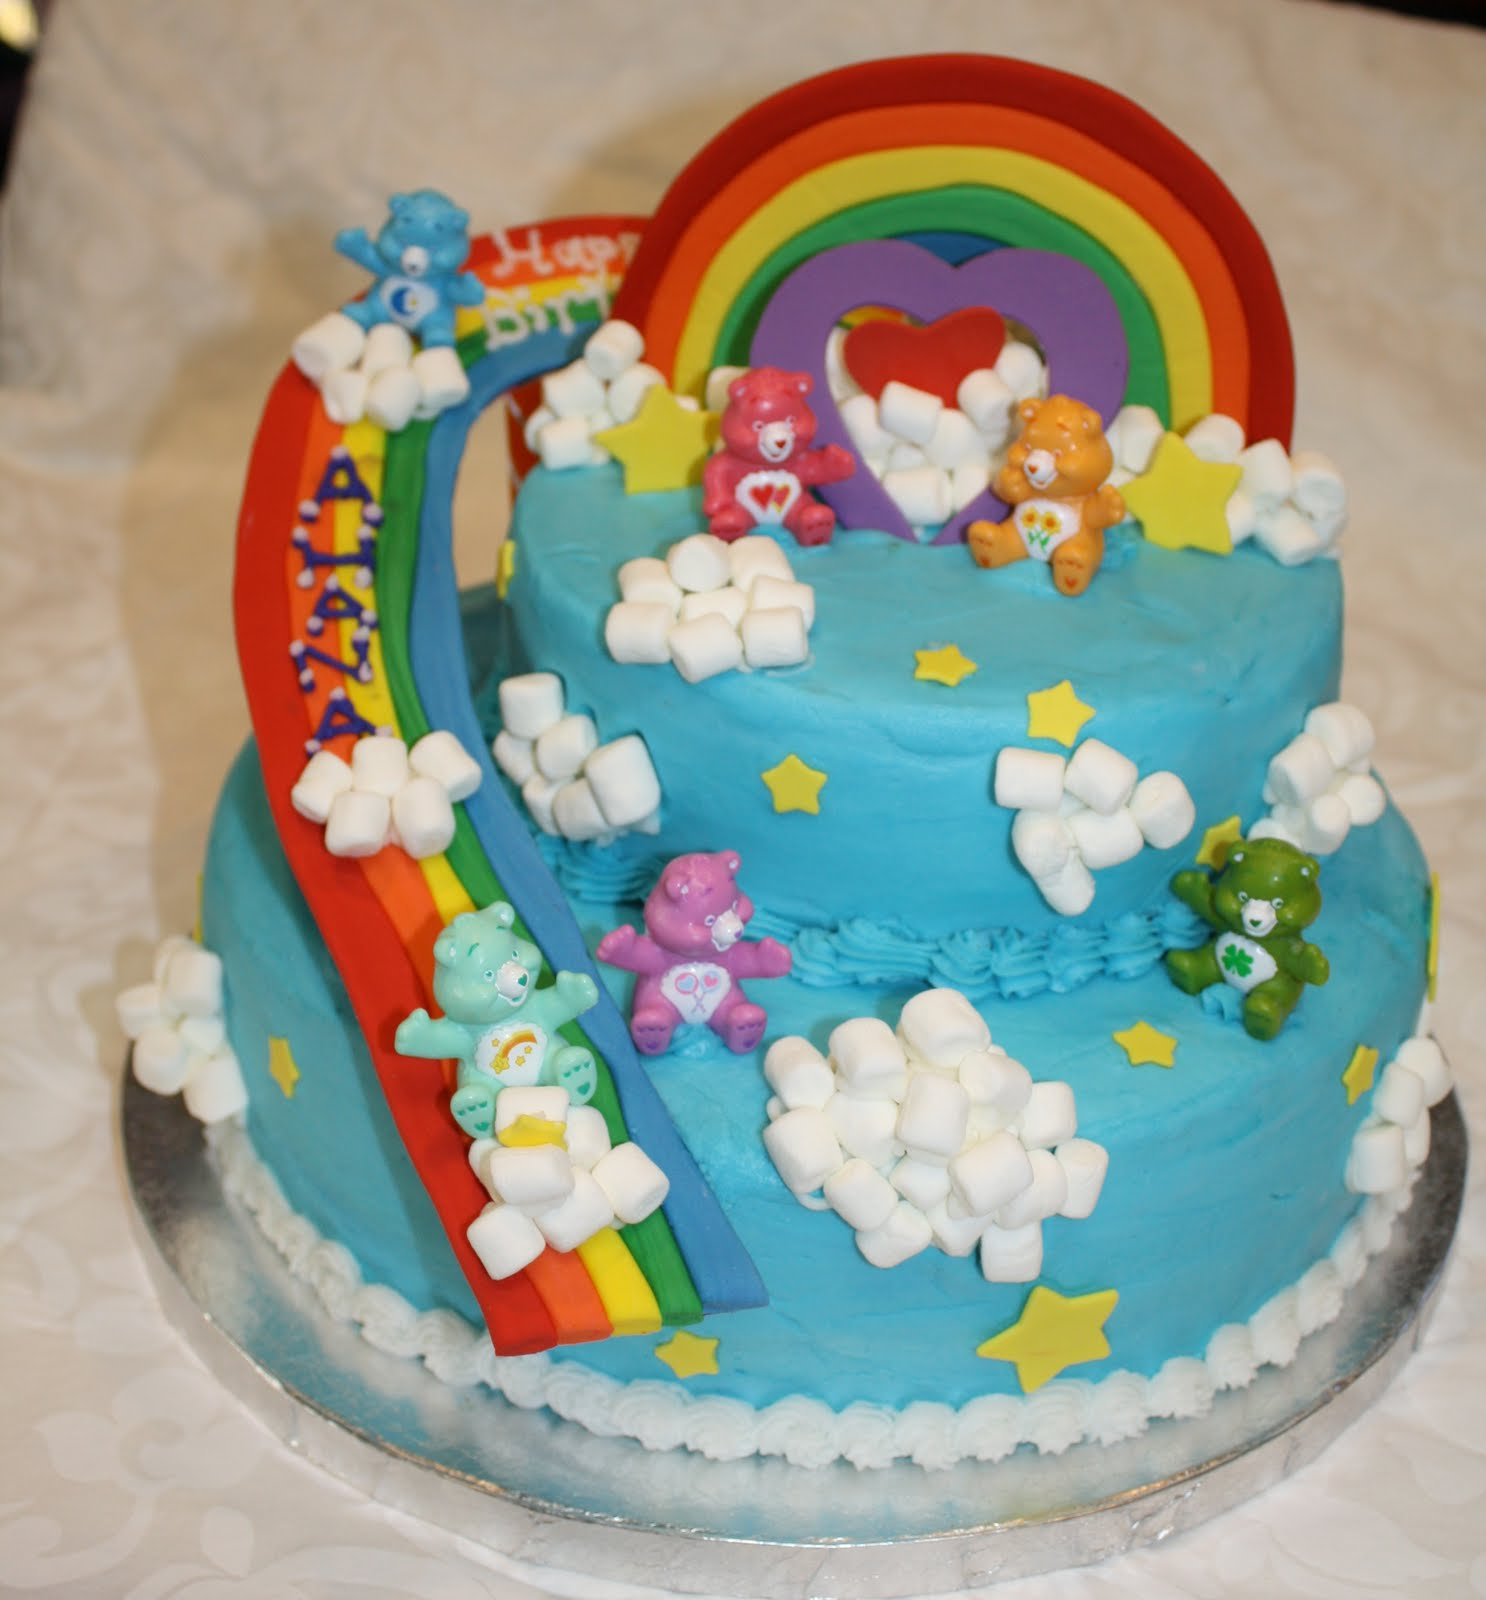 cakelicious care bears birthday cake